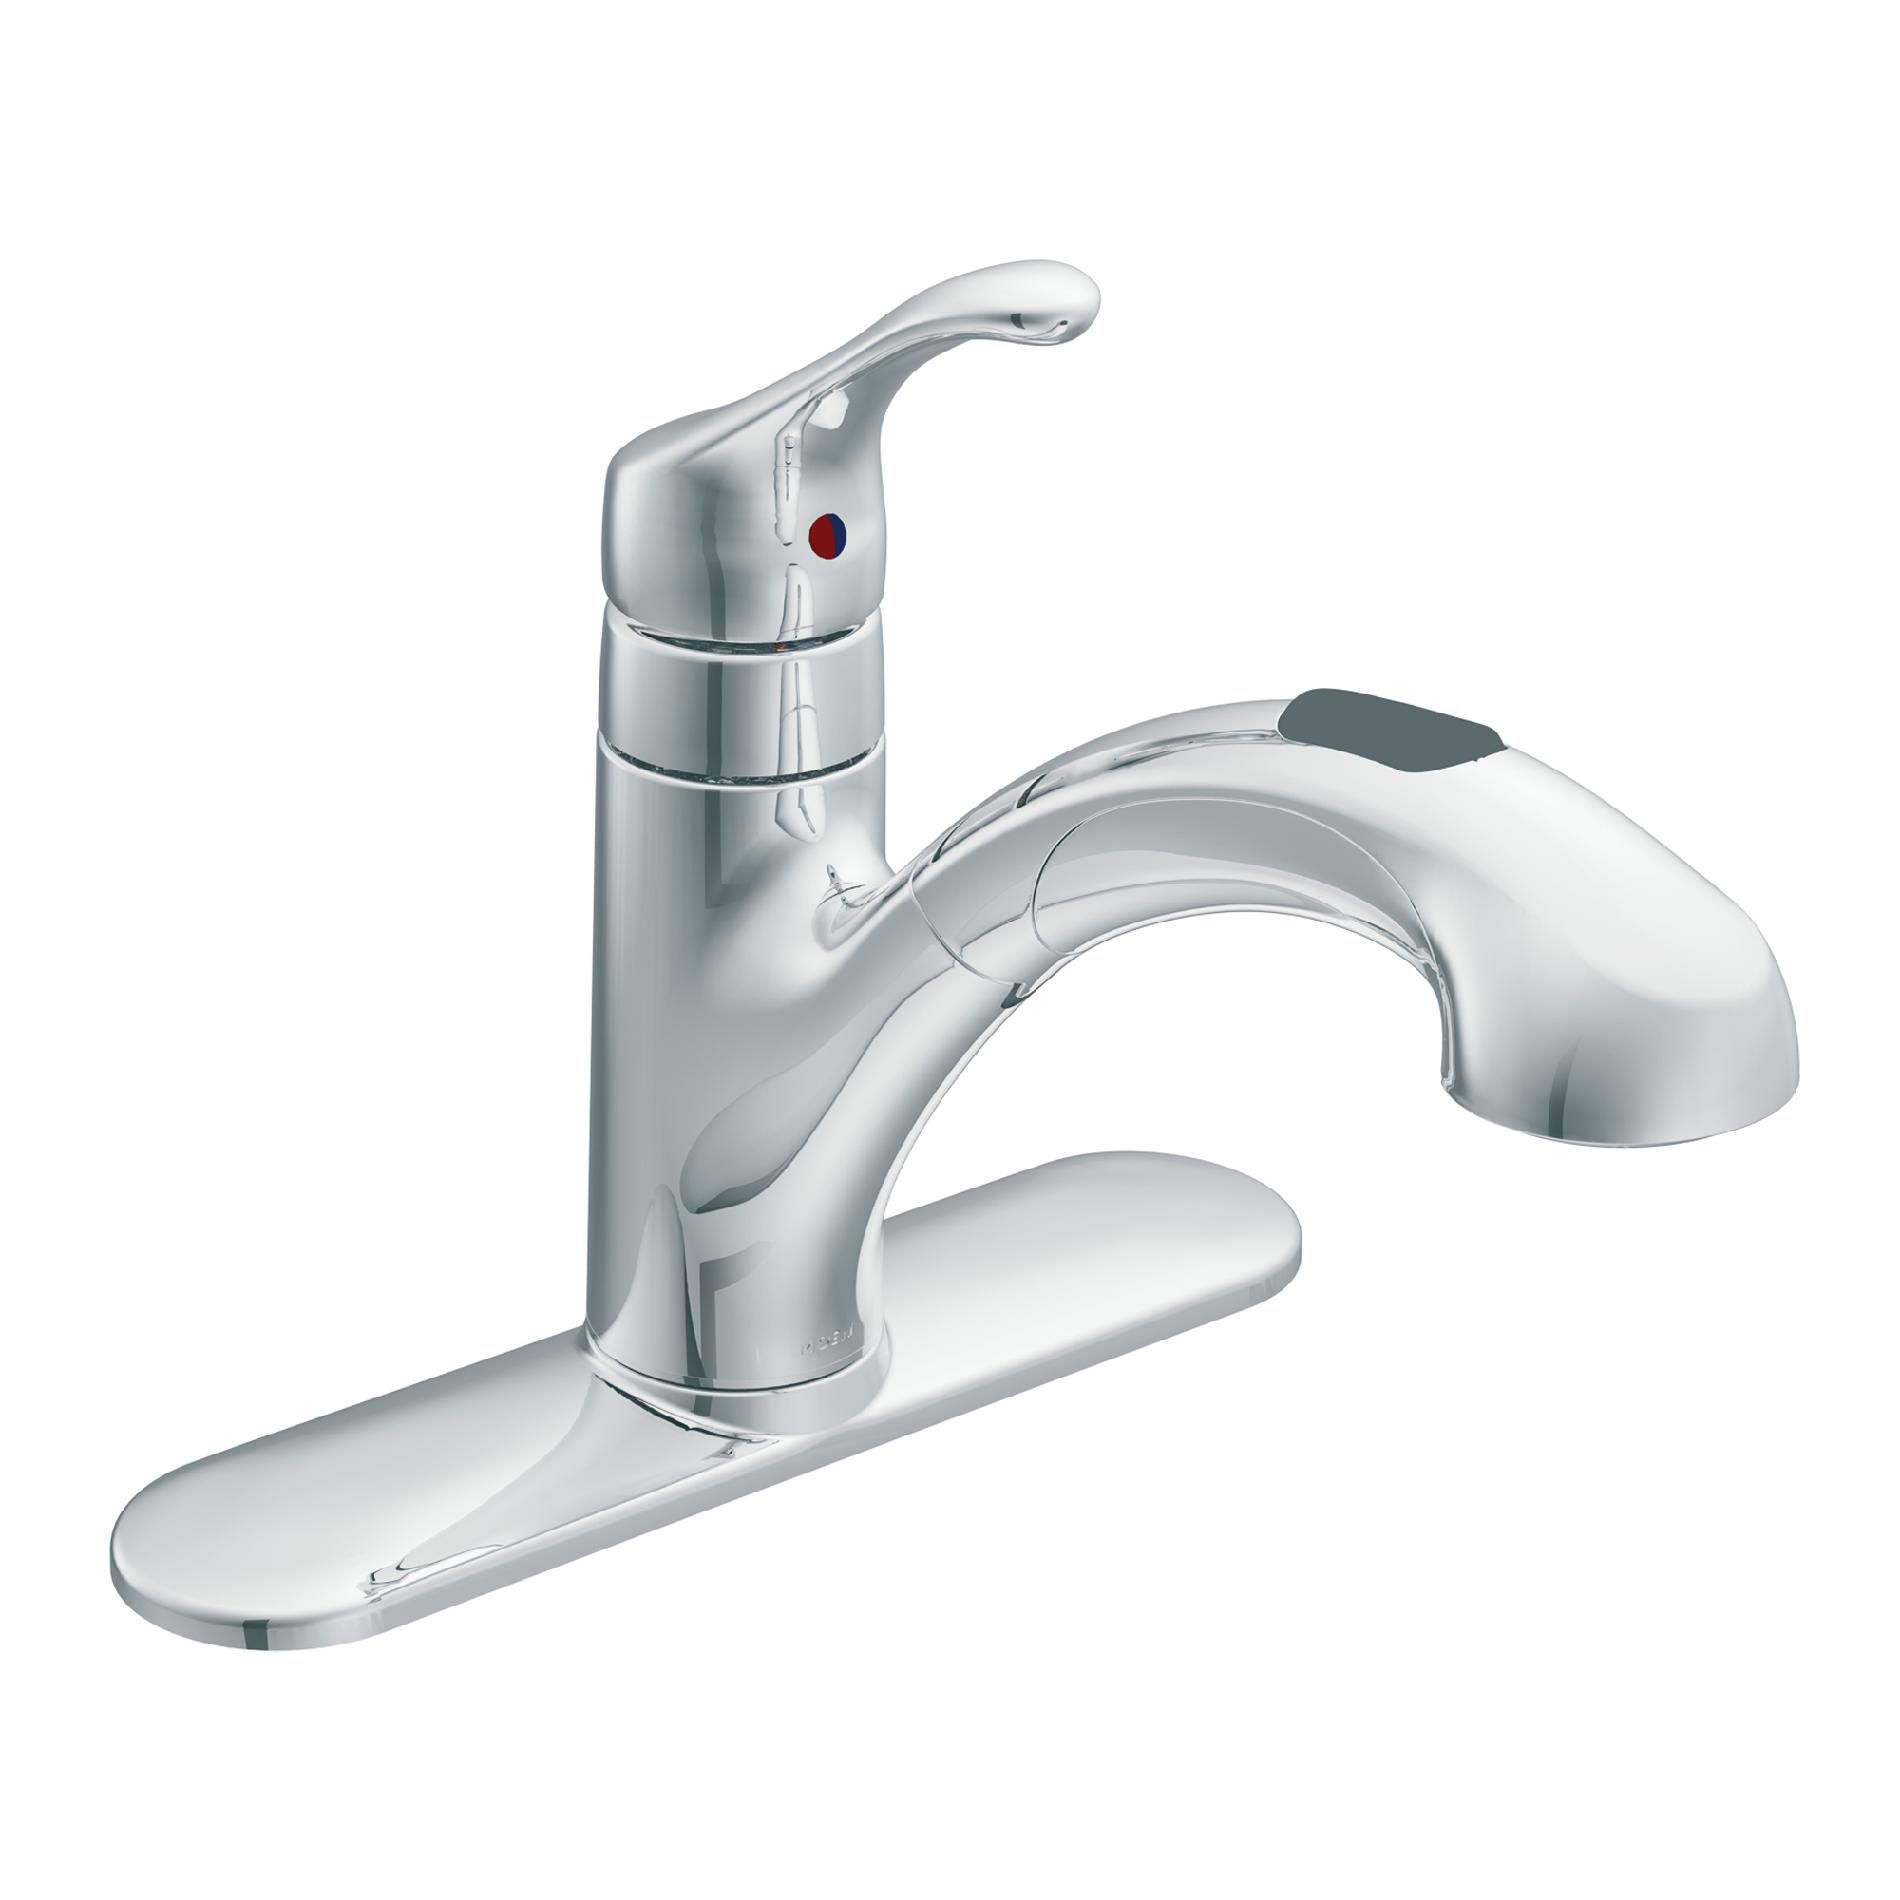 kitchen faucet moen banquette ideas single handle faucets sears inc ca87316c 1 pull